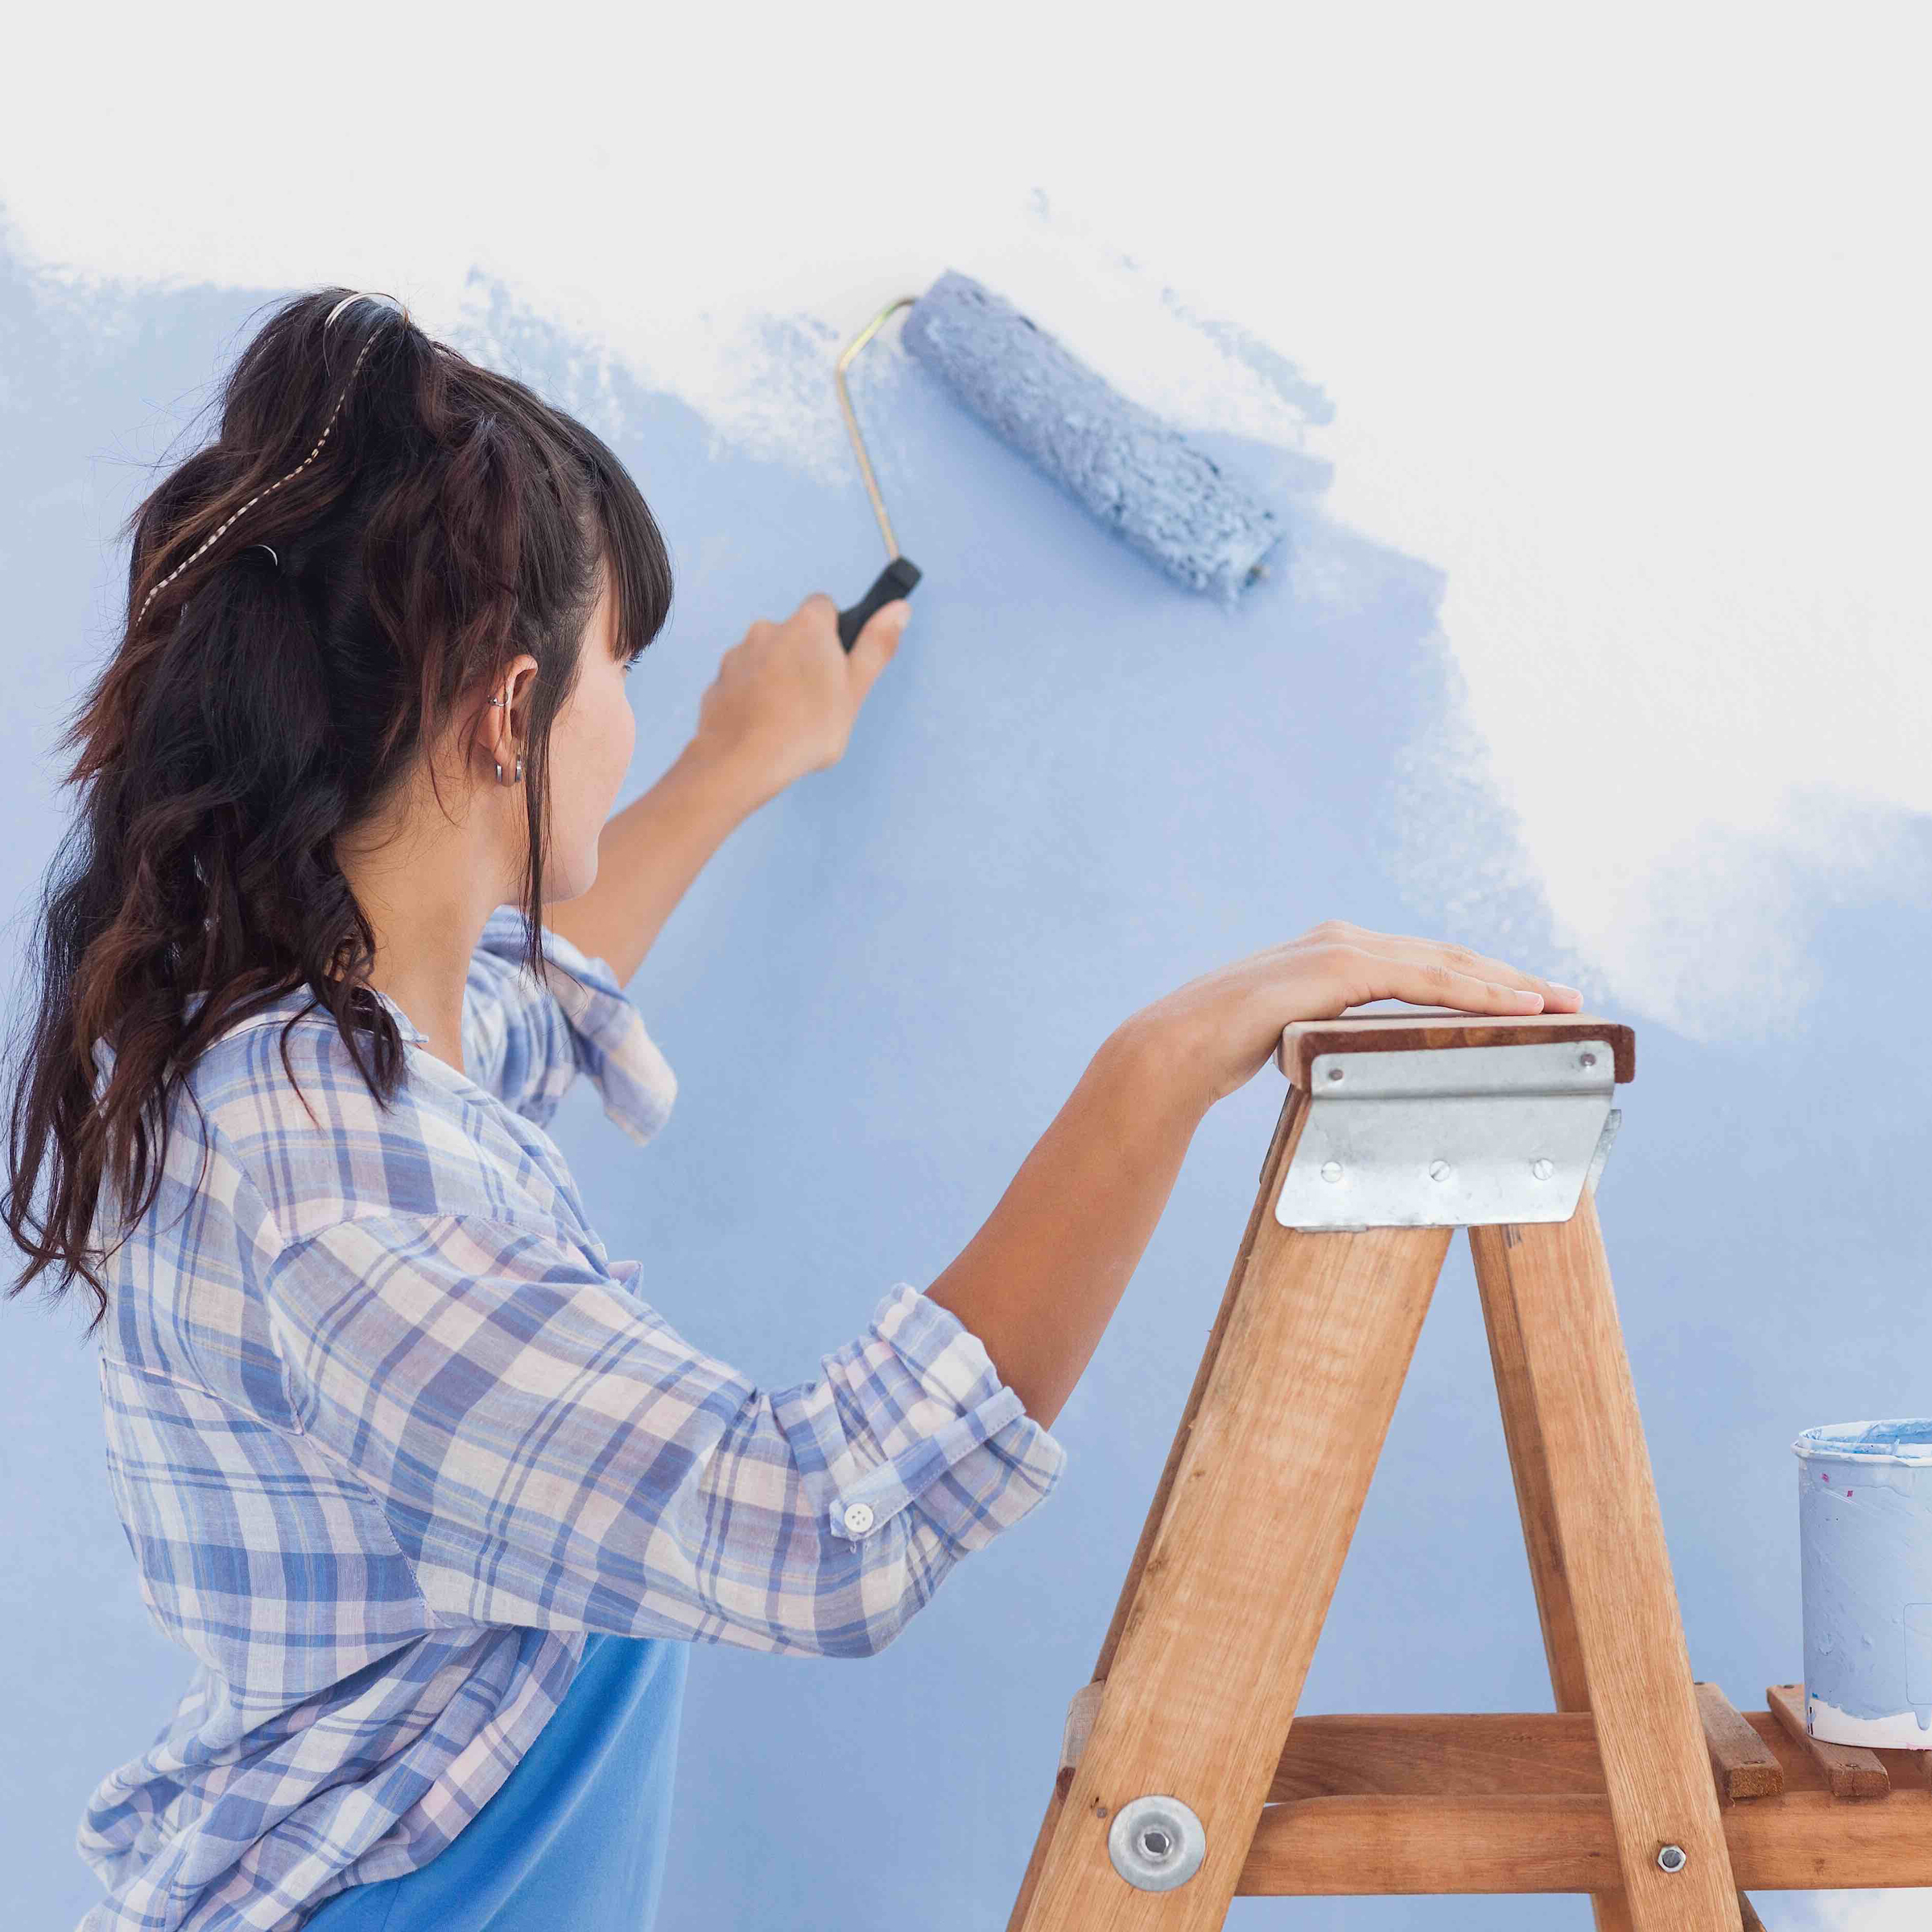 brown haired woman painting a white wall blue with a roller